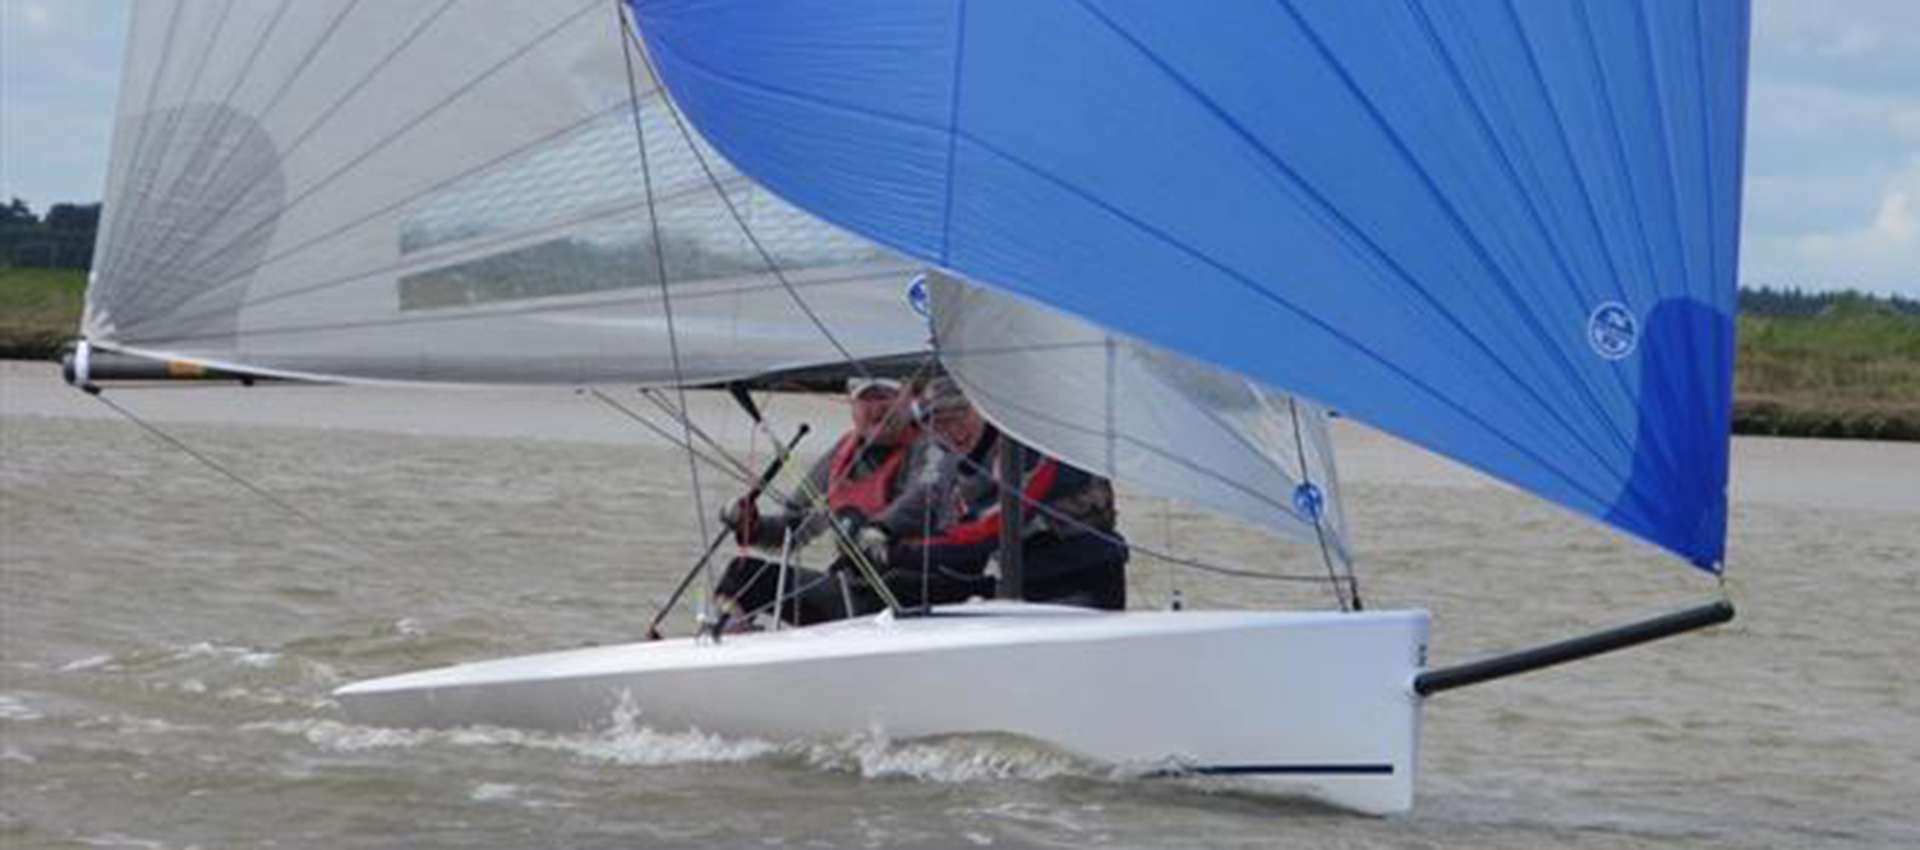 K6 - RS Sailing, the world's largest small-sailboat manufacturer